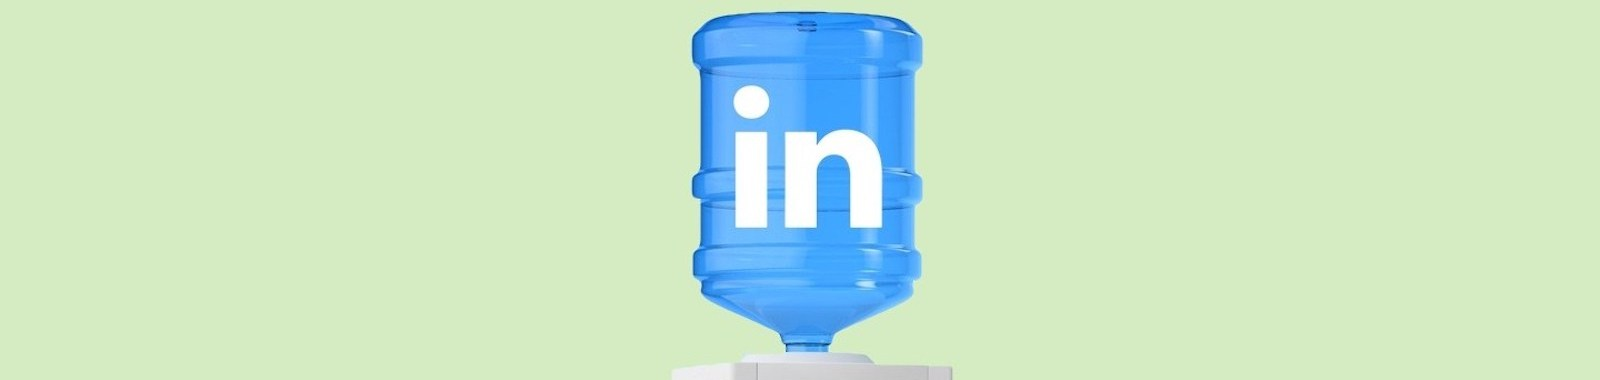 linkedin-watercooler-mainer-eye